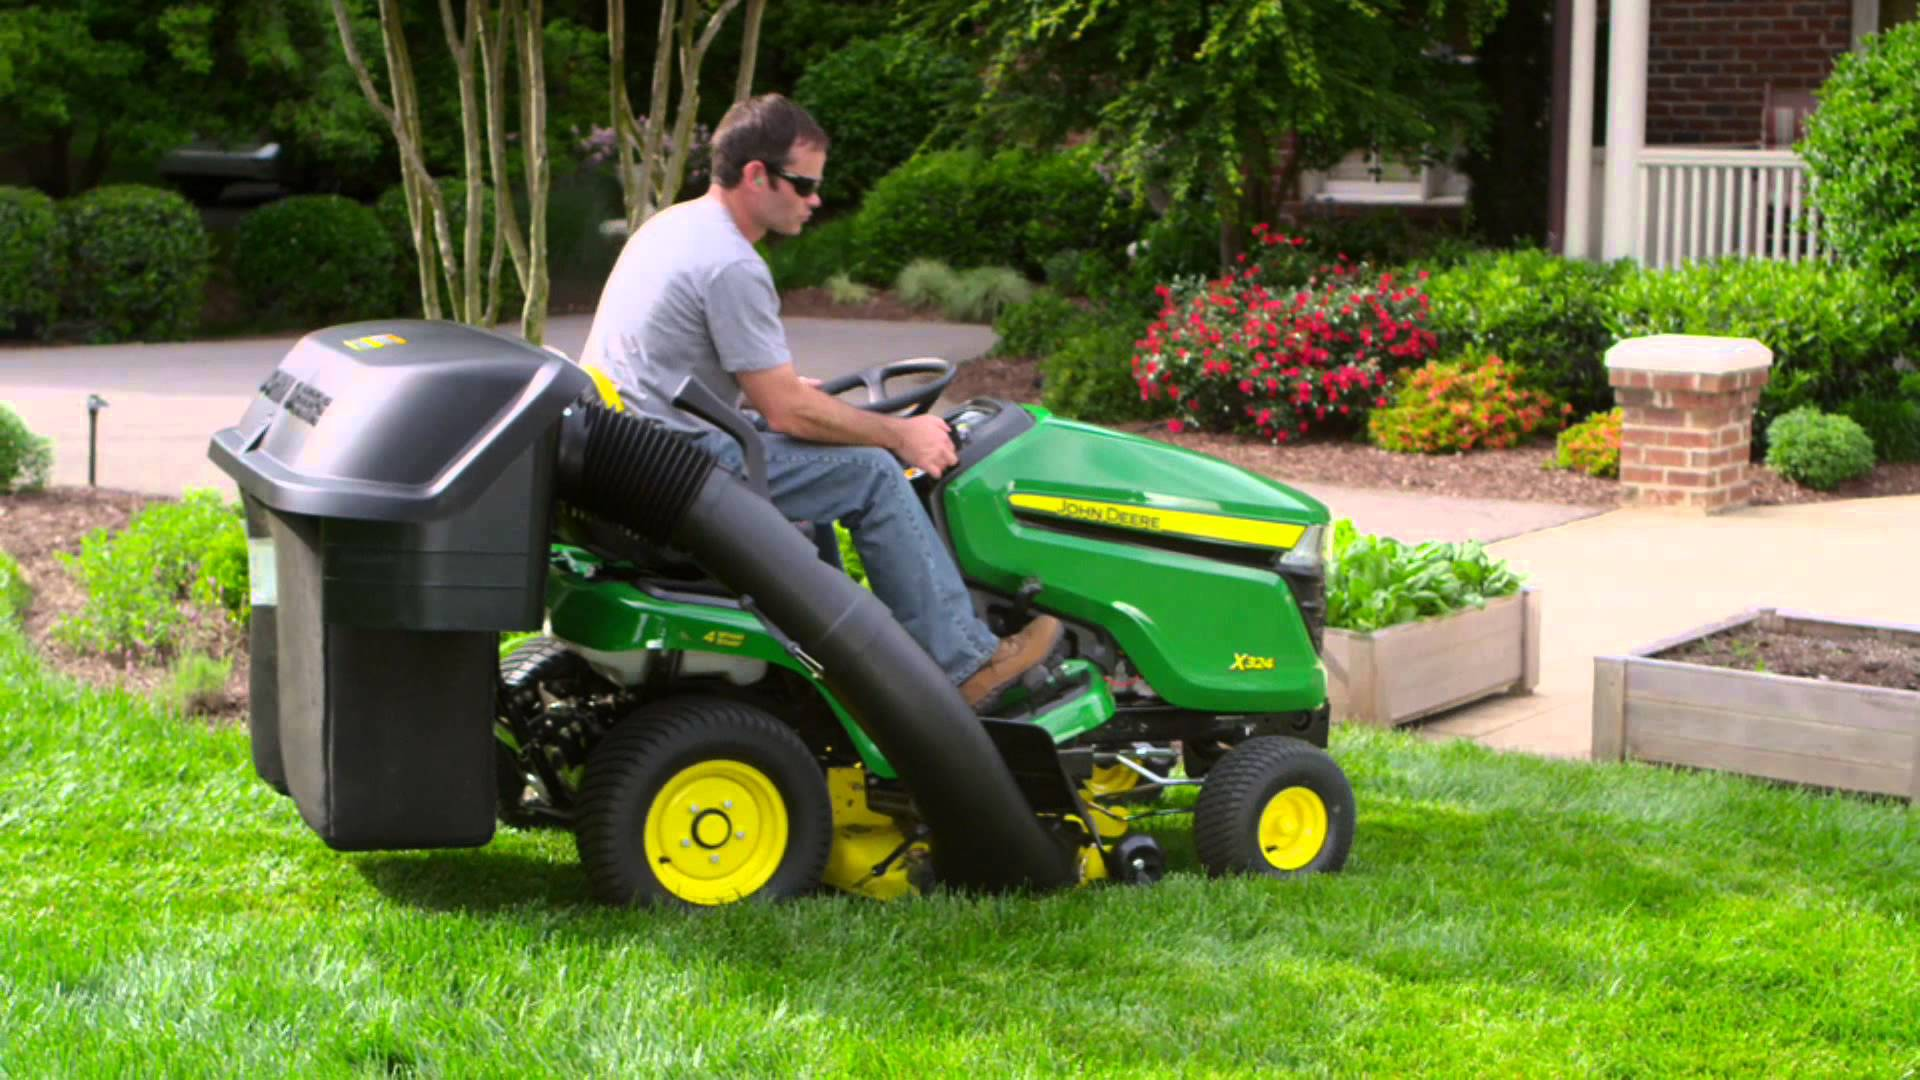 How Do Riding Lawn Mowers Work?